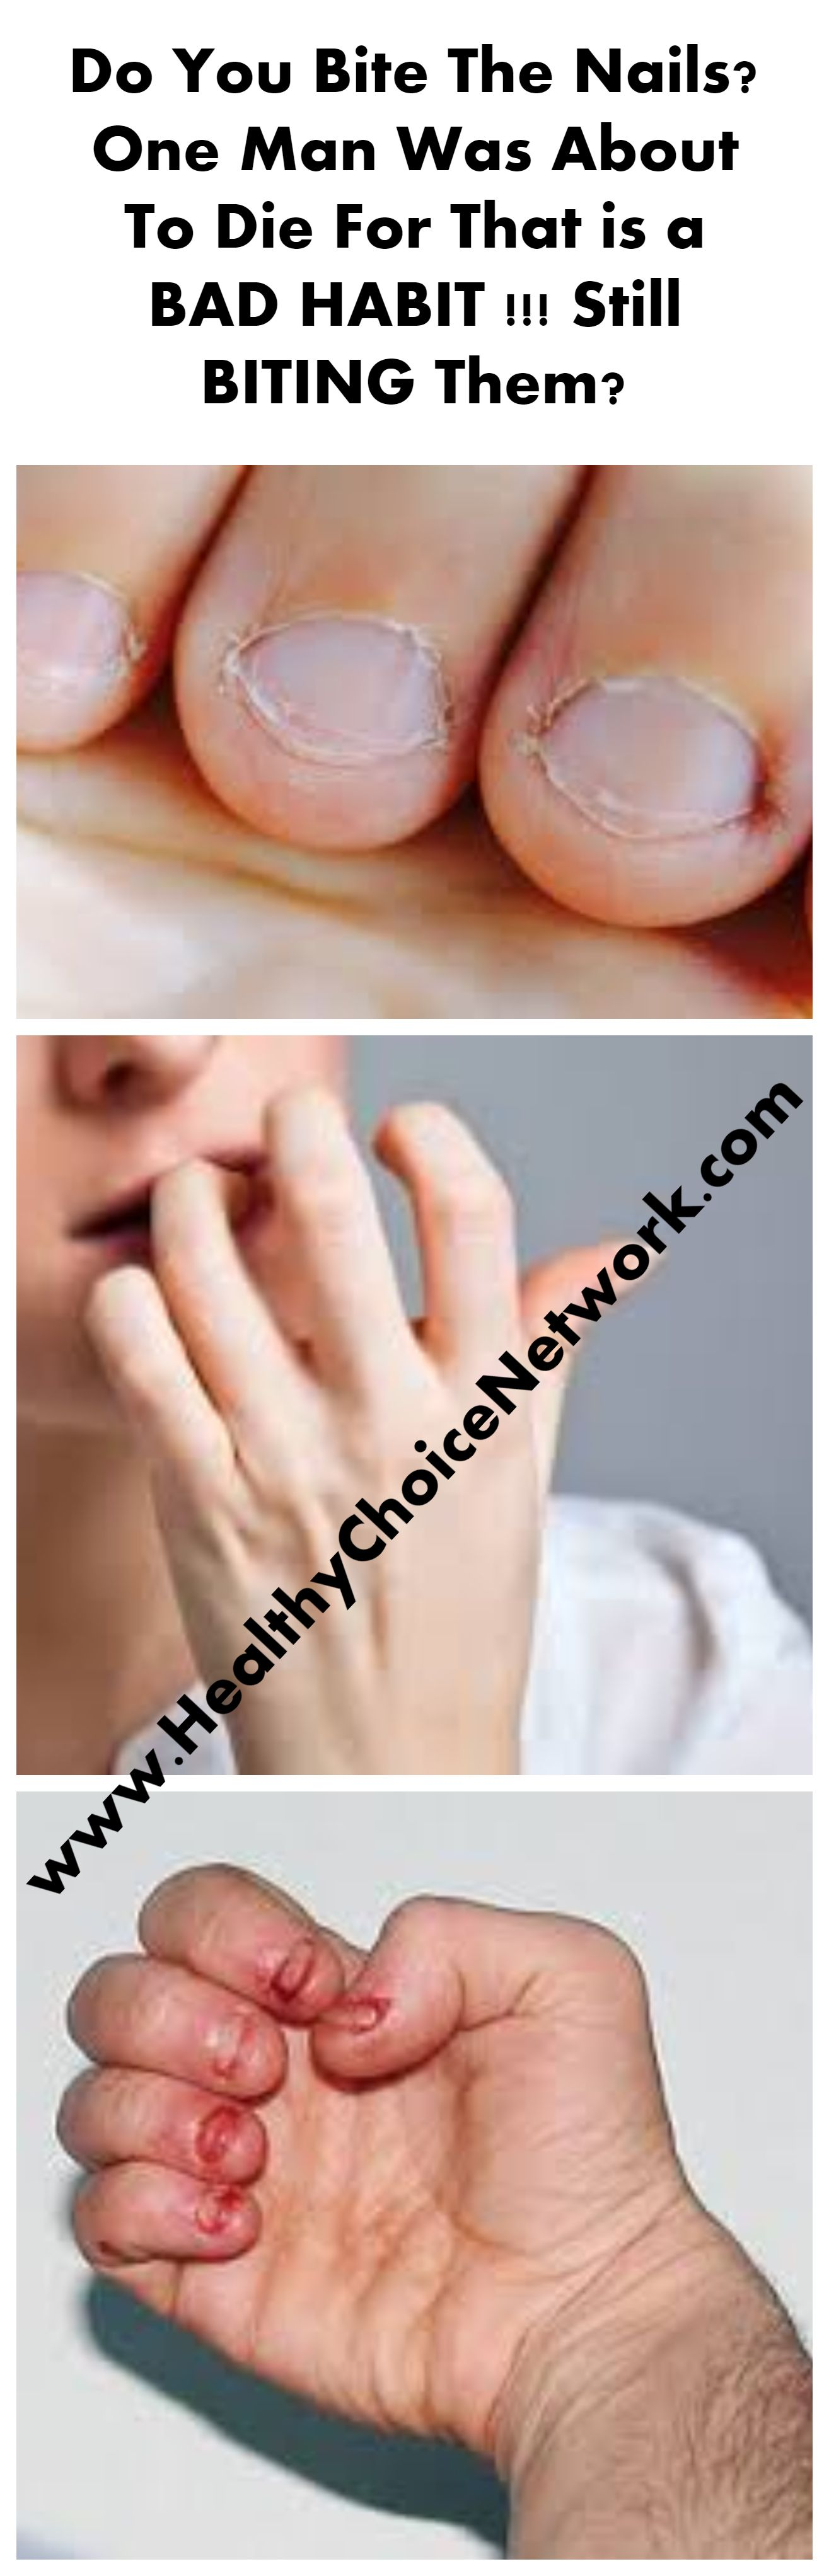 biting nails health issue dangerous Nails first